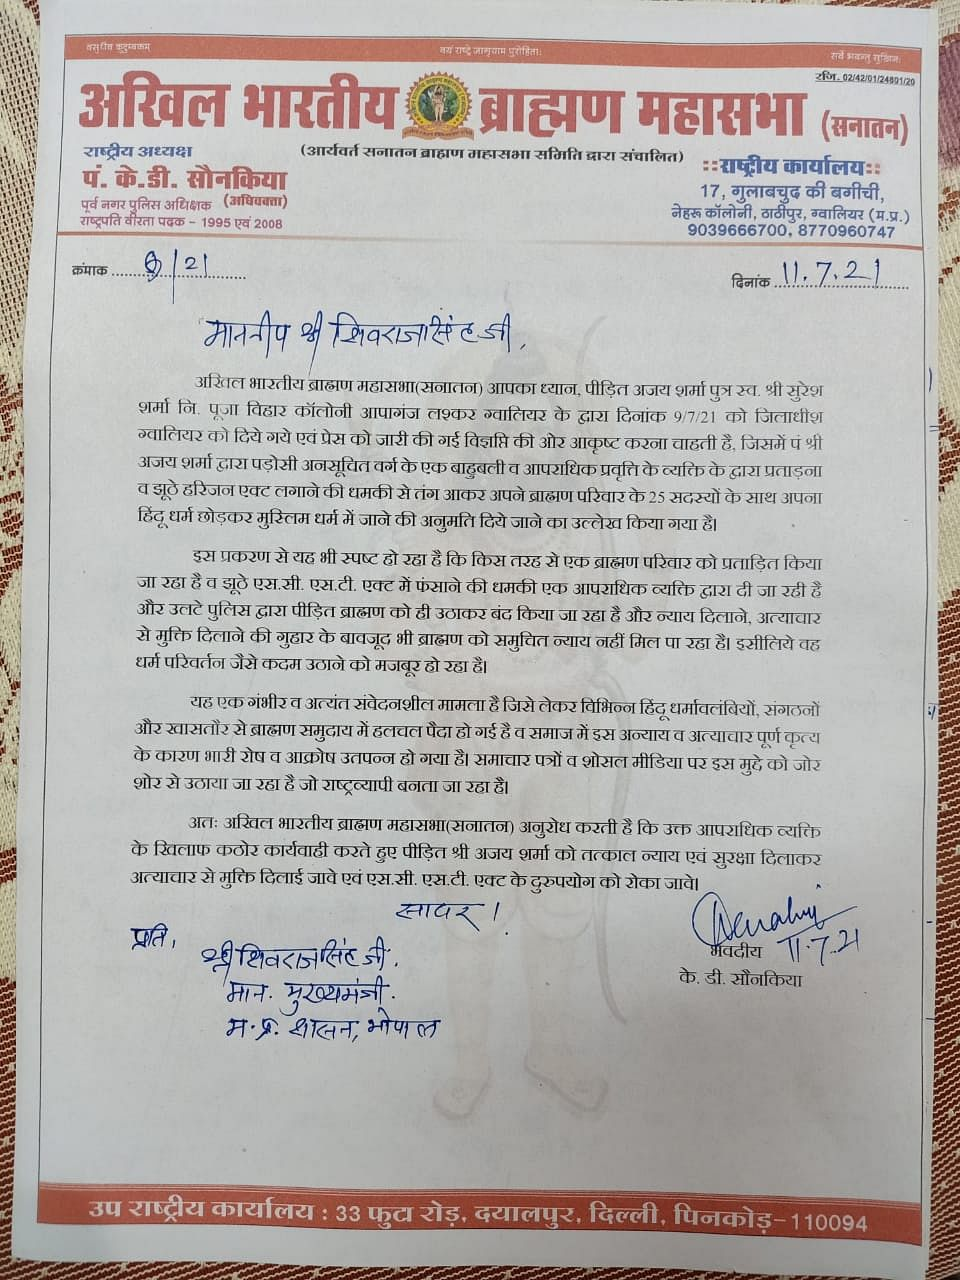 Gwalior: 25-member Brahmin family says it will convert to Islam if Dalit neighbours continue to harass